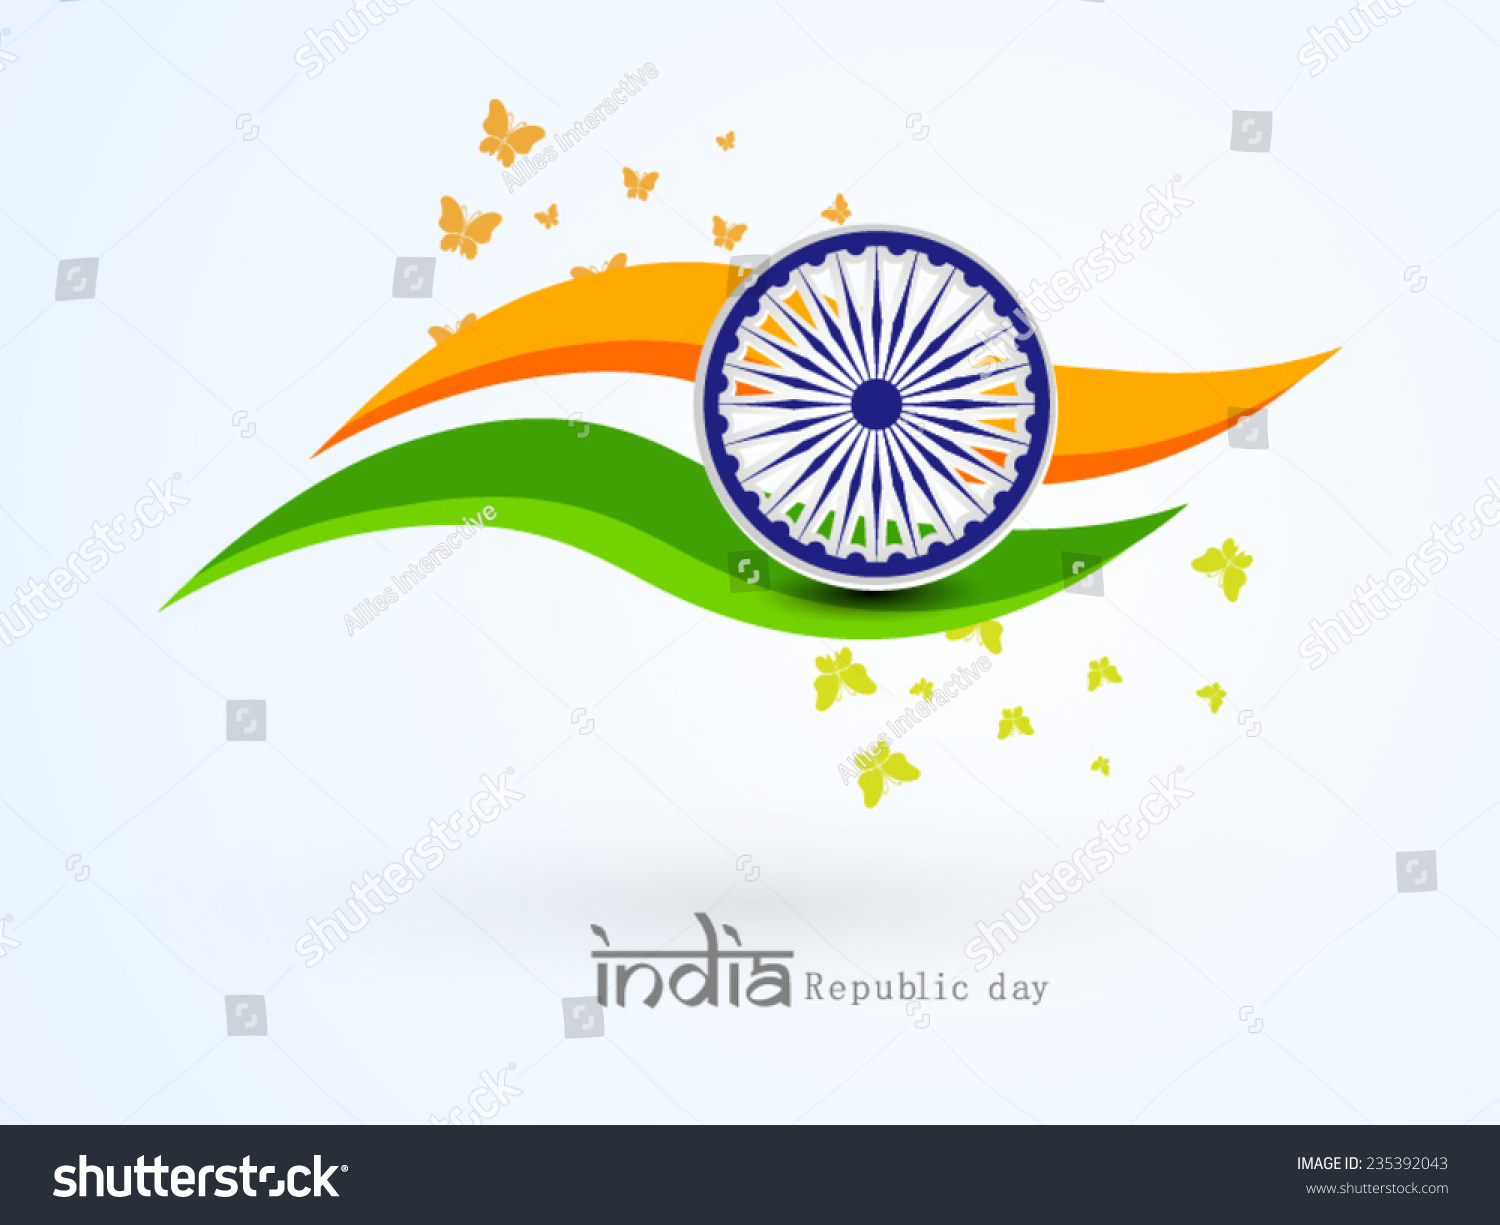 Colors website ashoka - Beautiful National Flag Color Waves With Ashoka Wheel And Flying Butterflies For Indian Republic Day Celebration